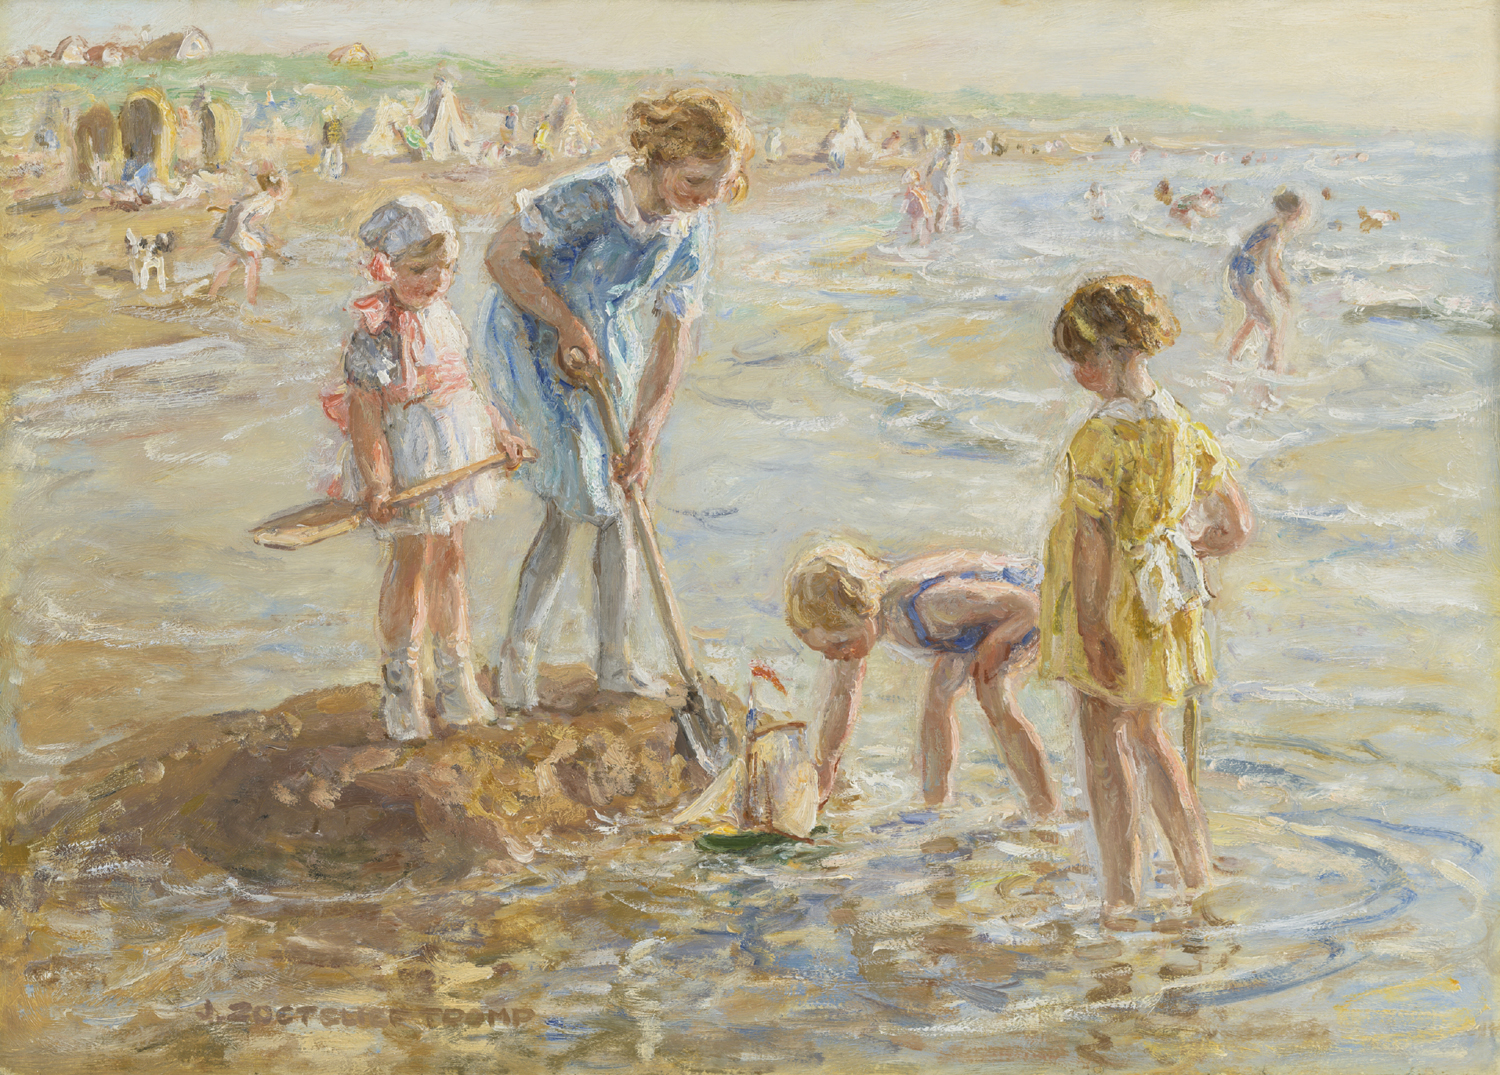 Jan Zoetelief Tromp | Children playing on the beach | Kunsthandel Bies | Bies Gallery